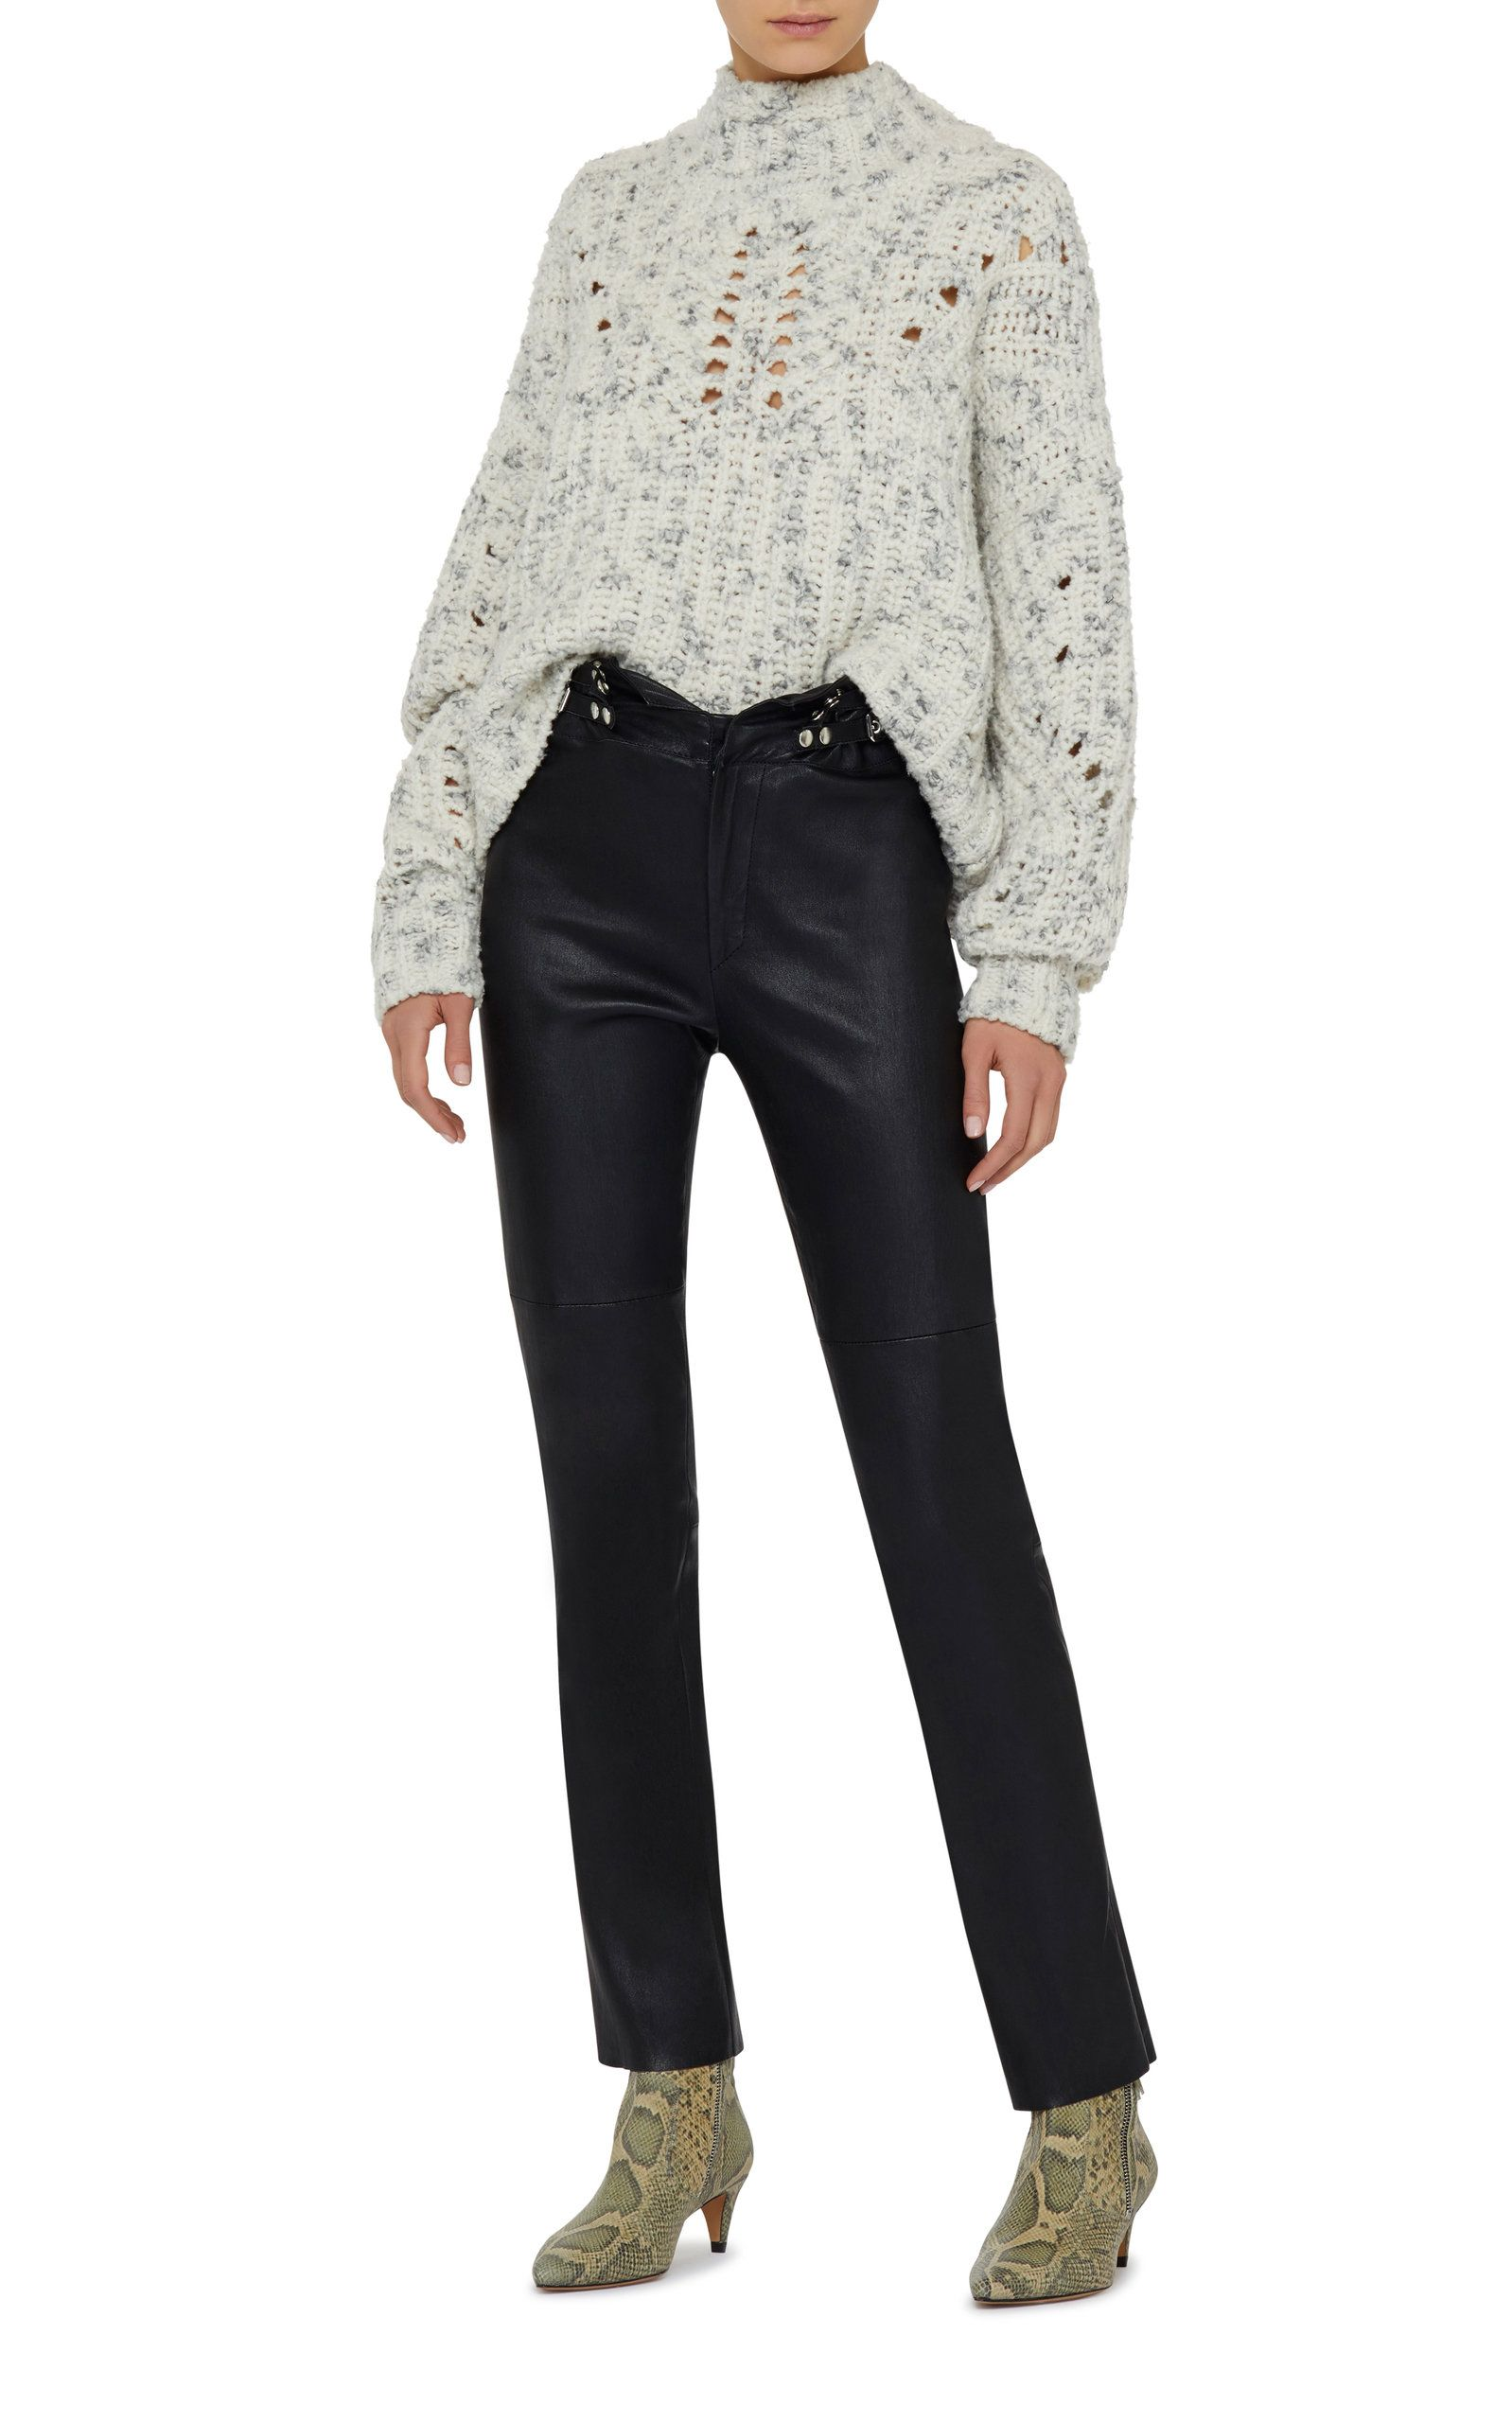 Isabel Marant Jilly Arty Chunky Knit Wool Sweater